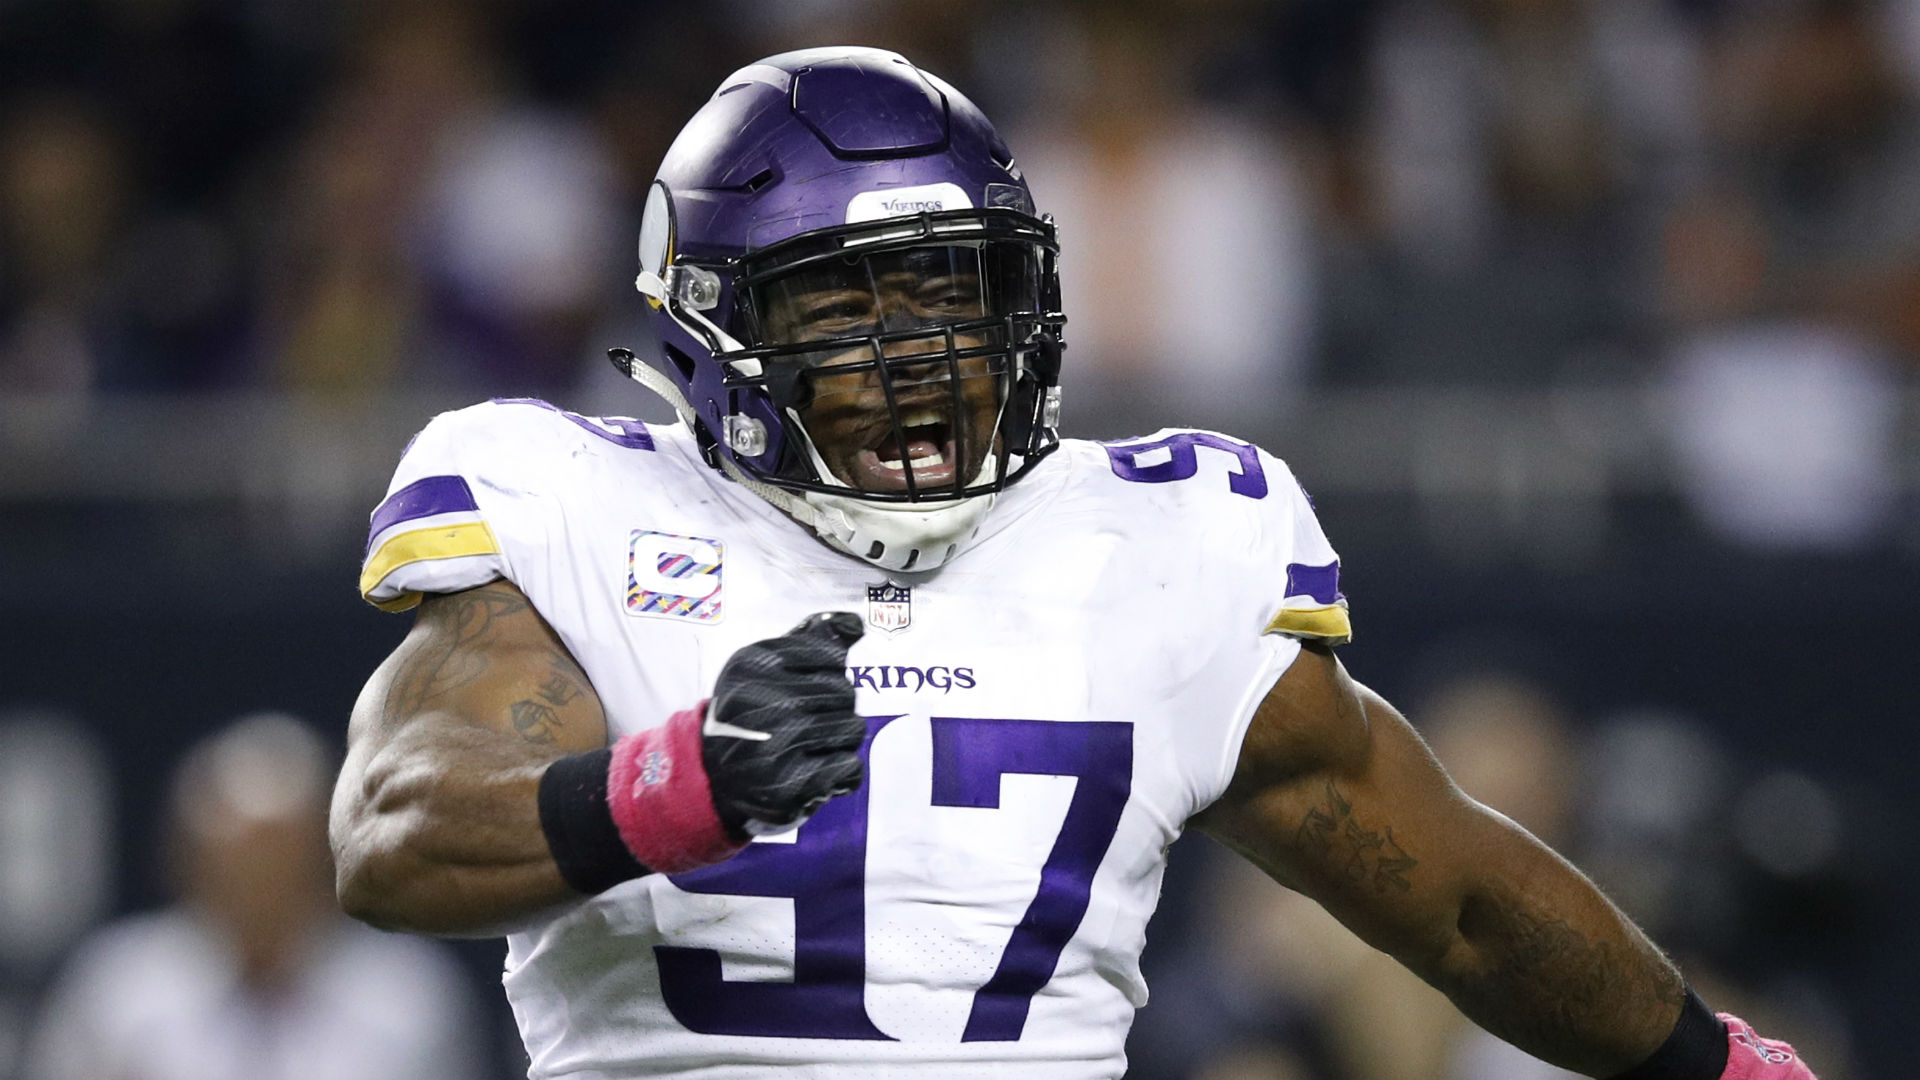 Vikings Everson Griffen asks fans to help name his baby during